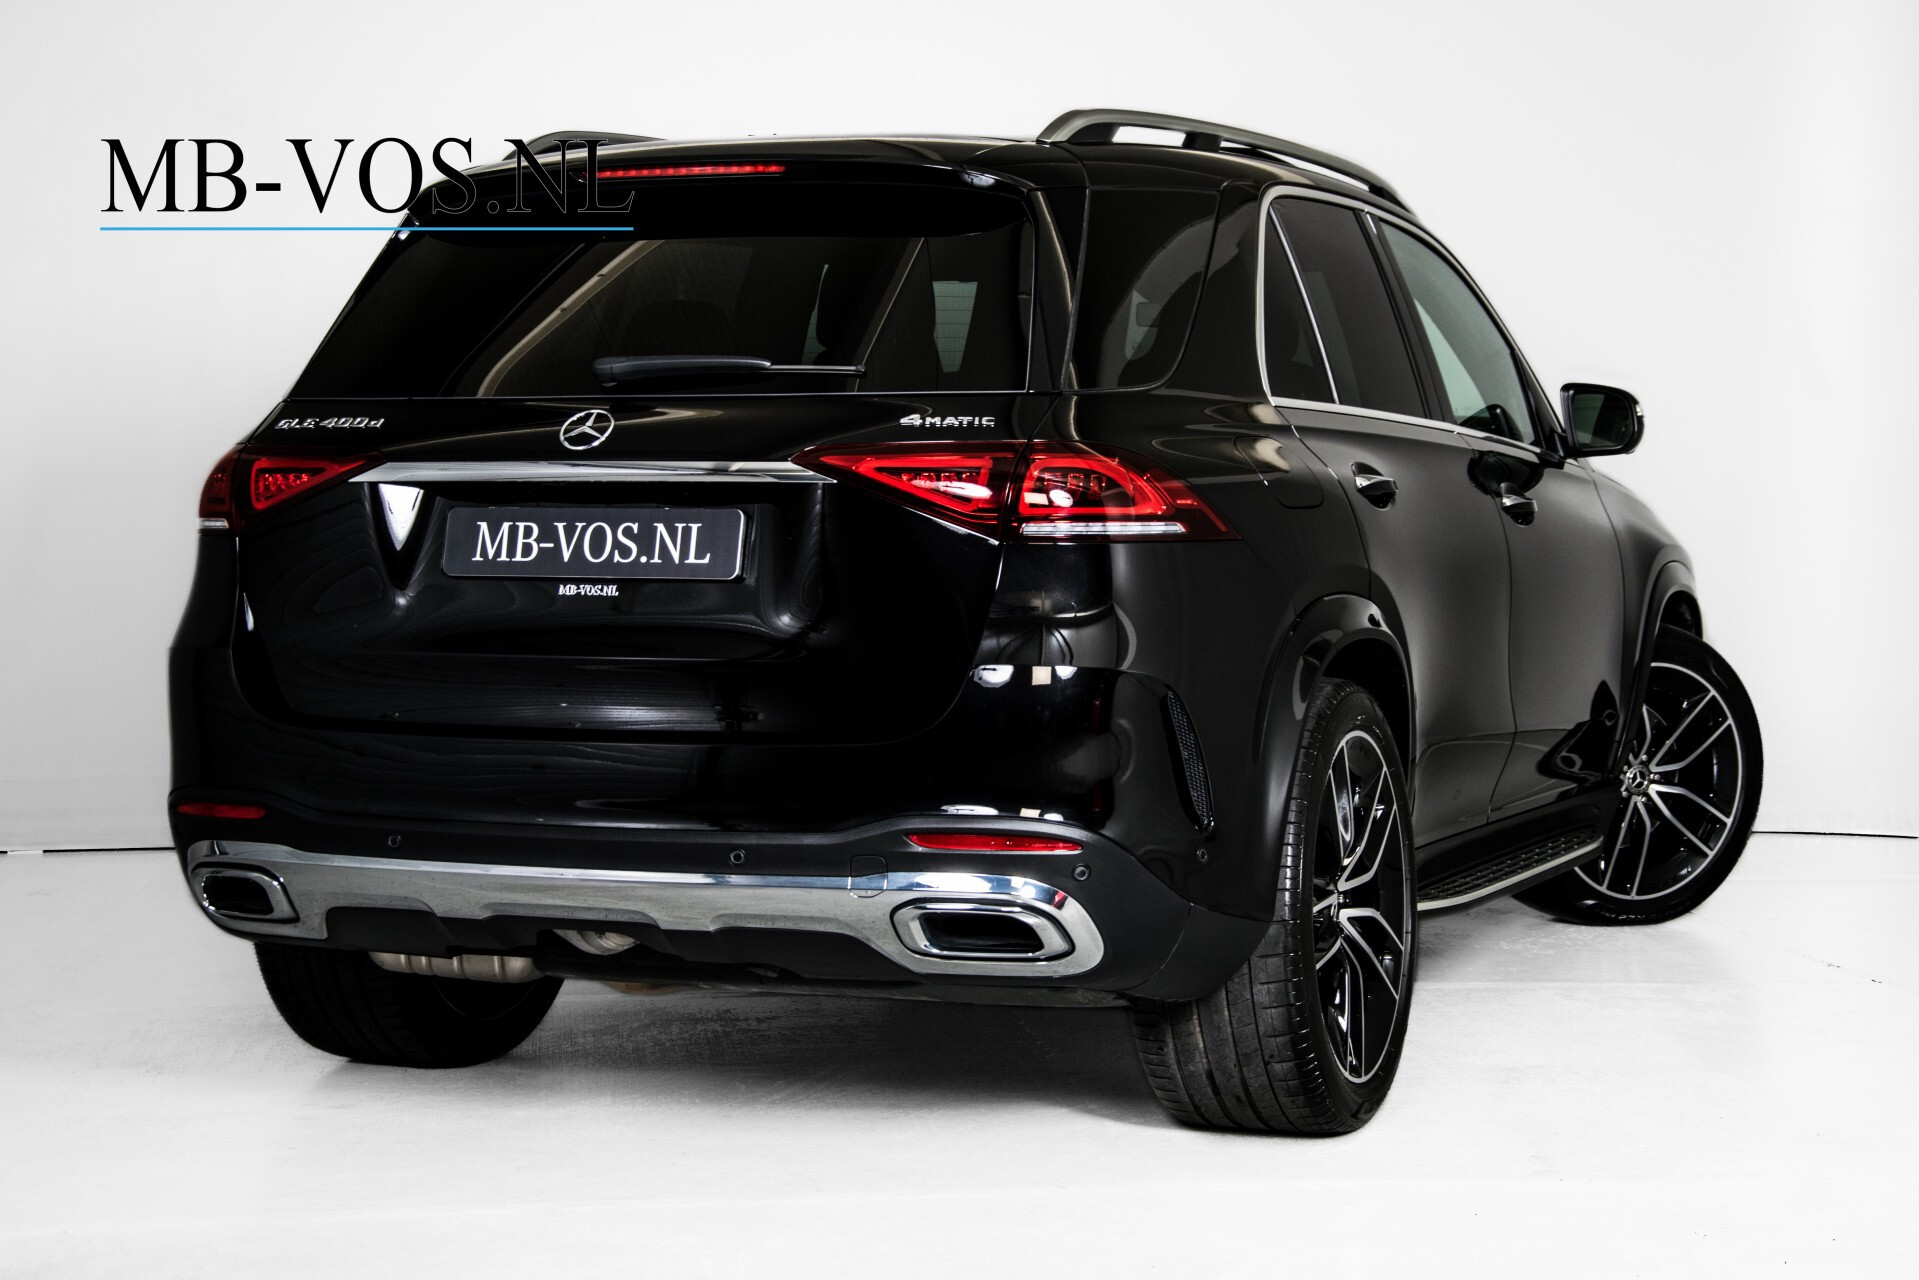 Mercedes-Benz GLE 400 d 4-M Luchtvering/Distronic/Keyless/HUD/Burmester/Nappa/360 camera/Panorama Aut9 Foto 2